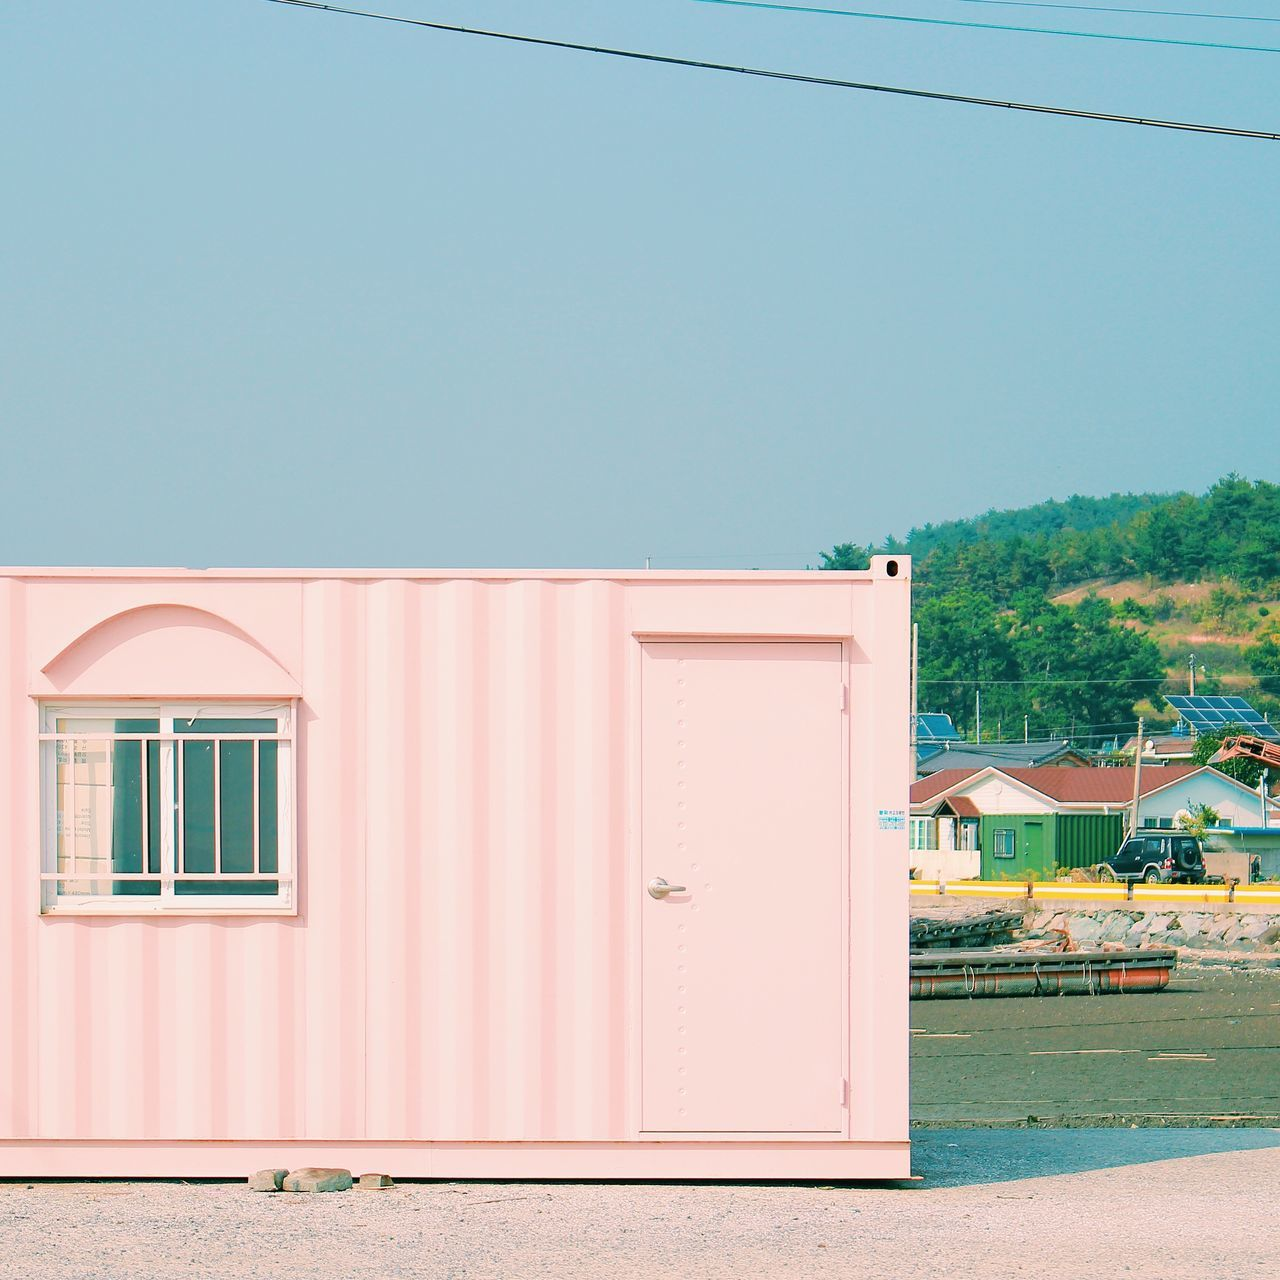 Traveling Sooncheon Korea Travel Photography Container Pink